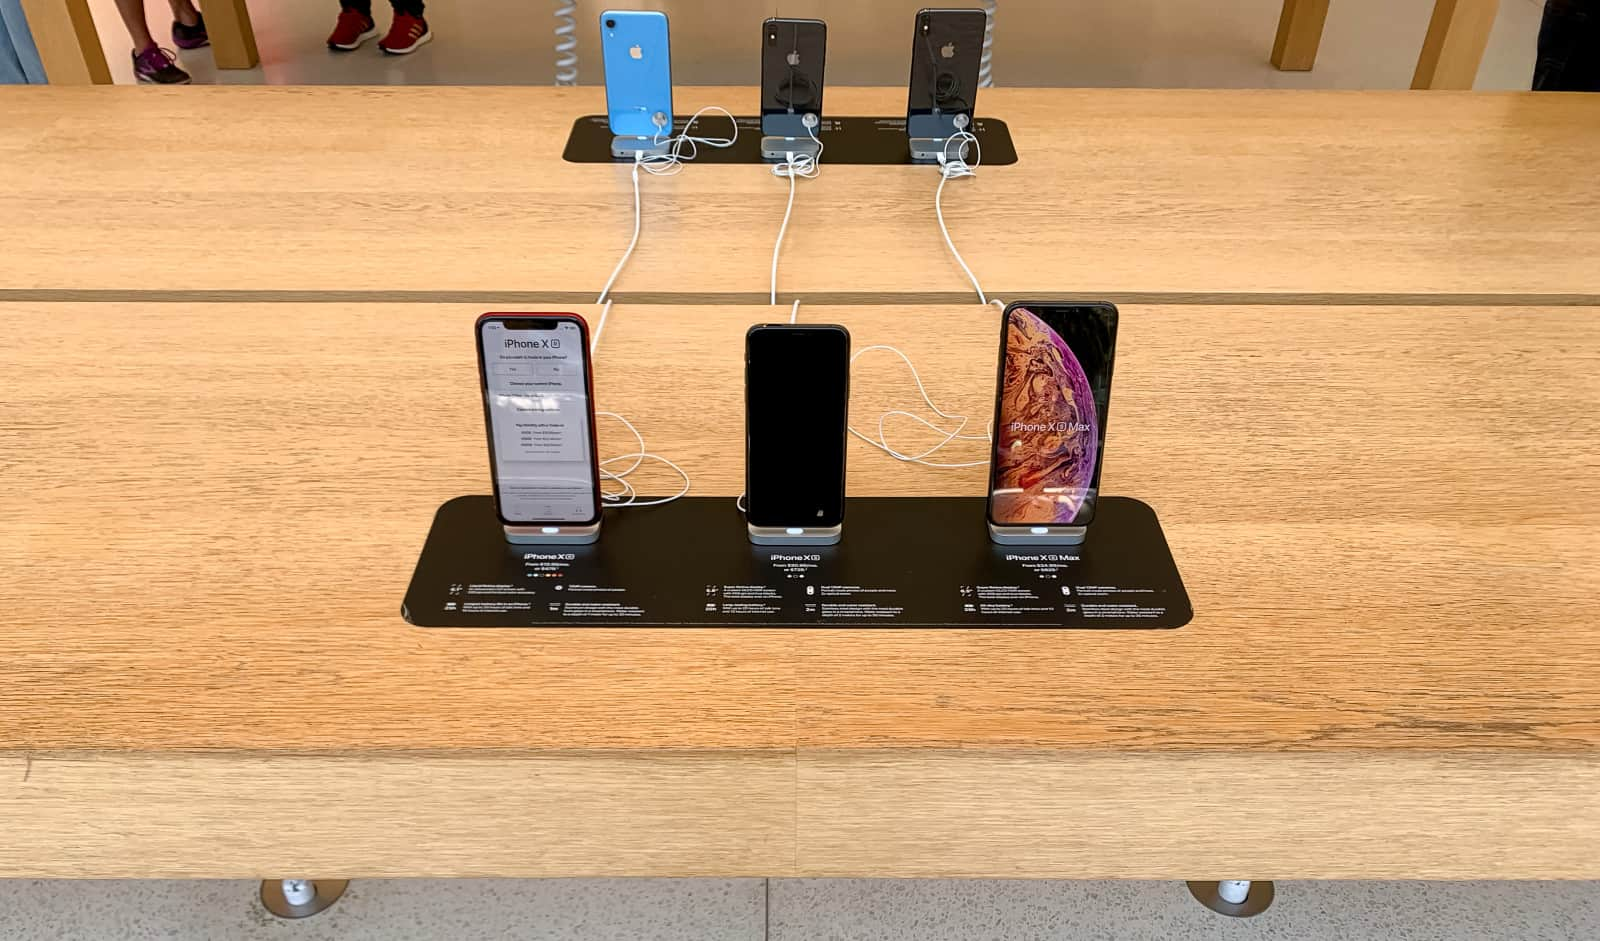 Apple Store Redesigned Image 1